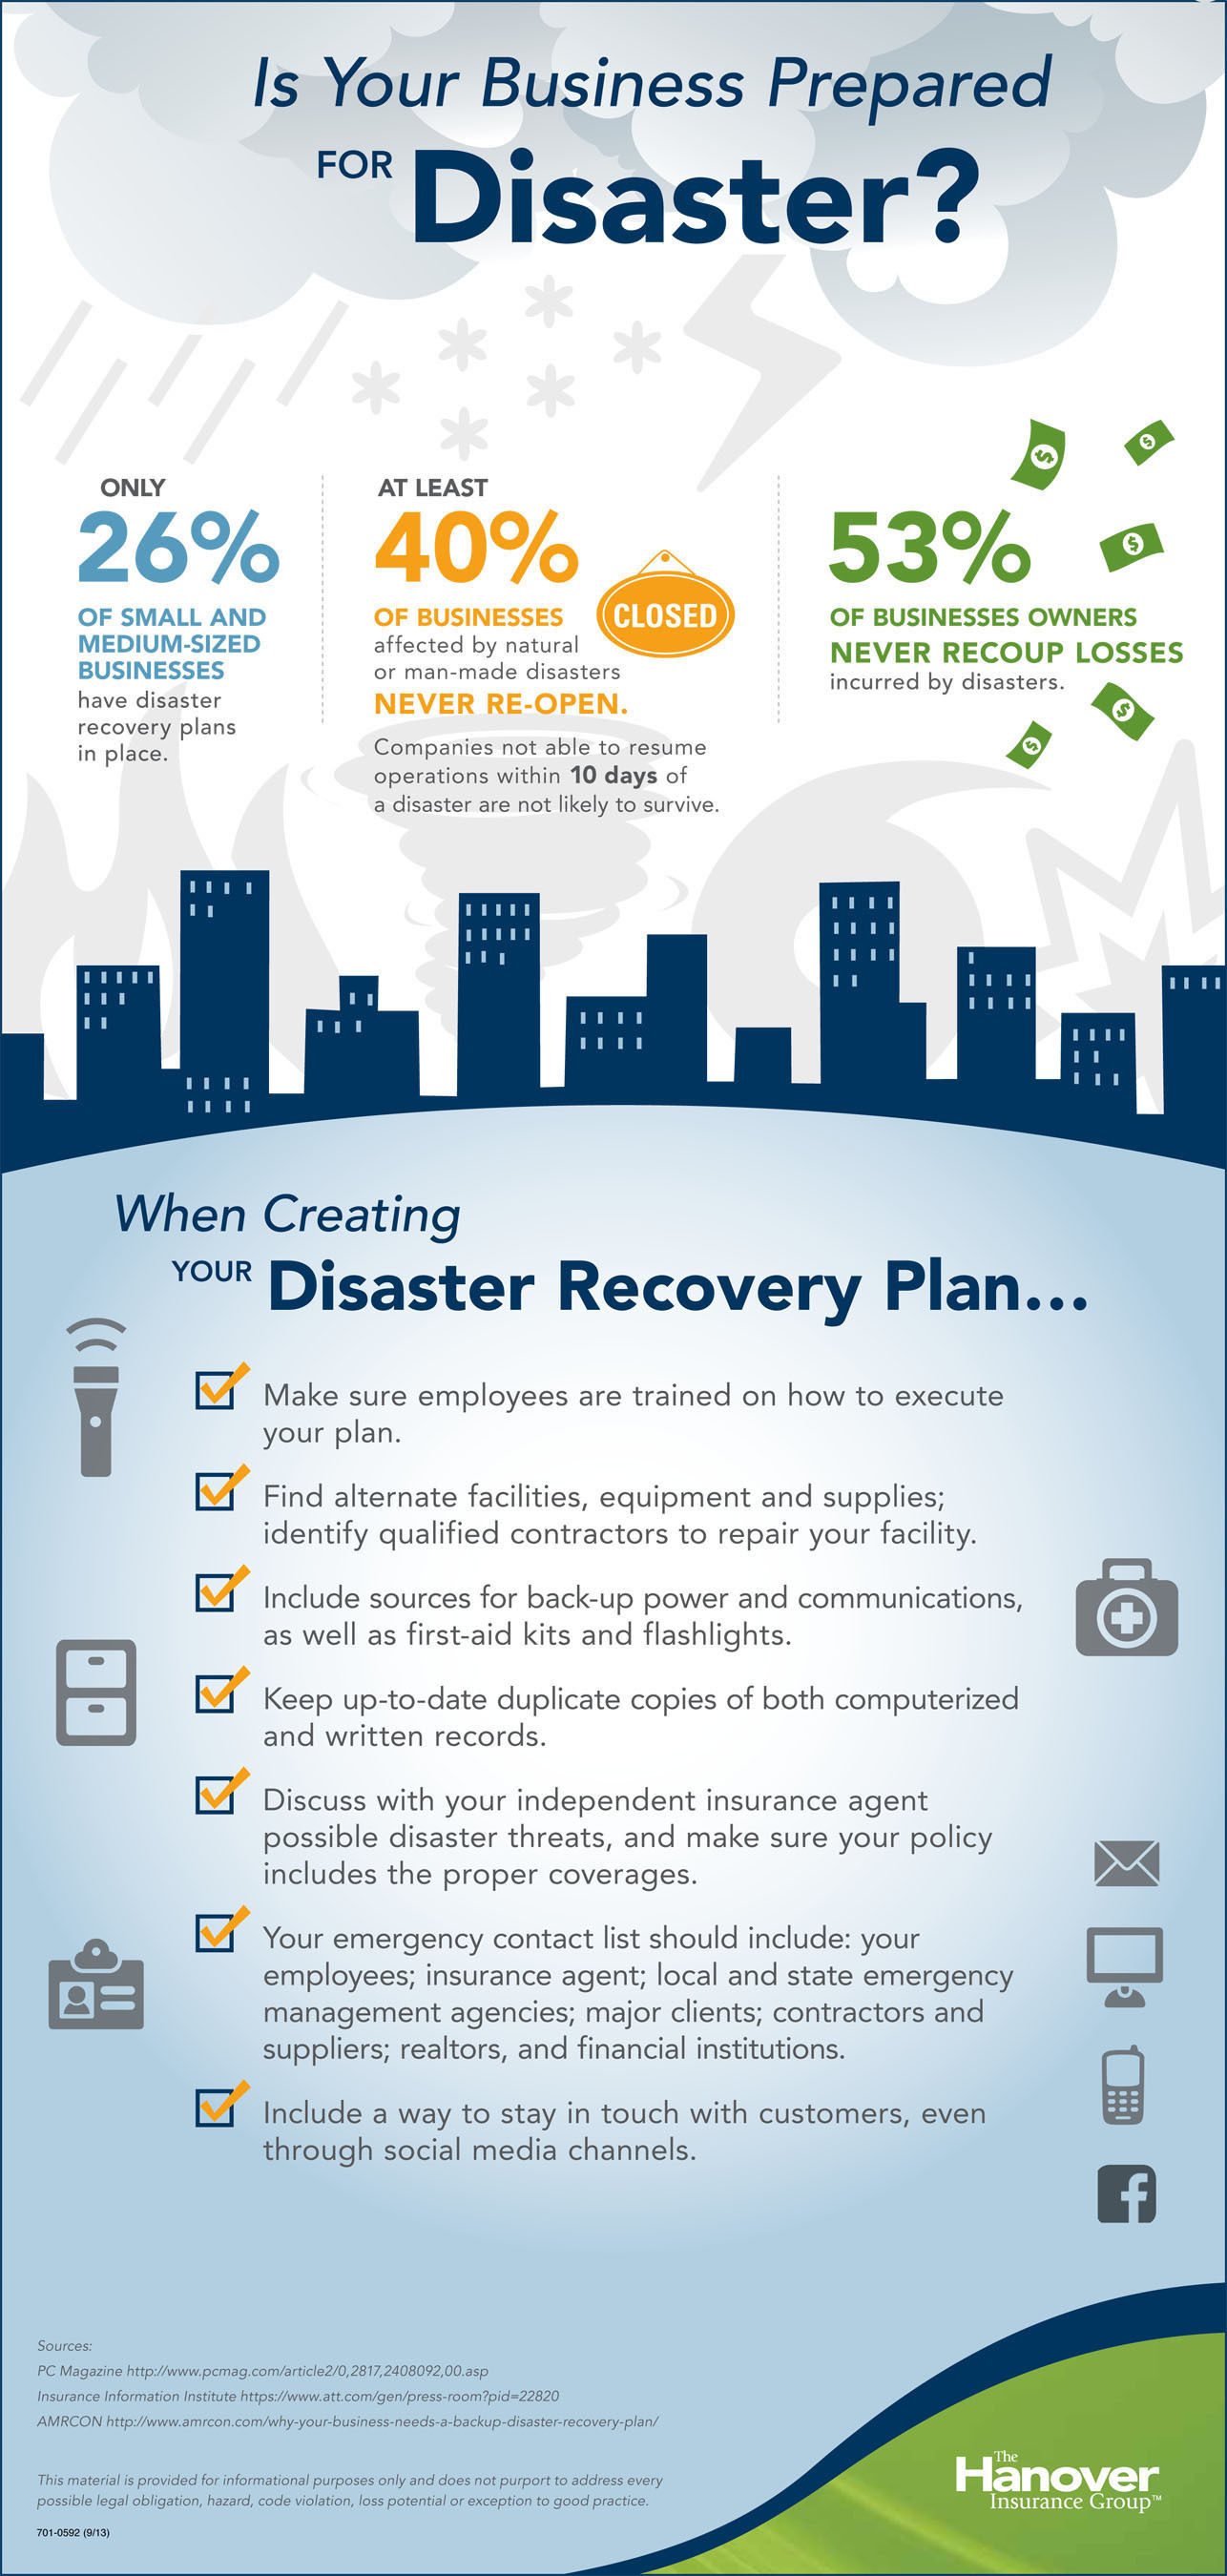 Protect Your Business From Disaster